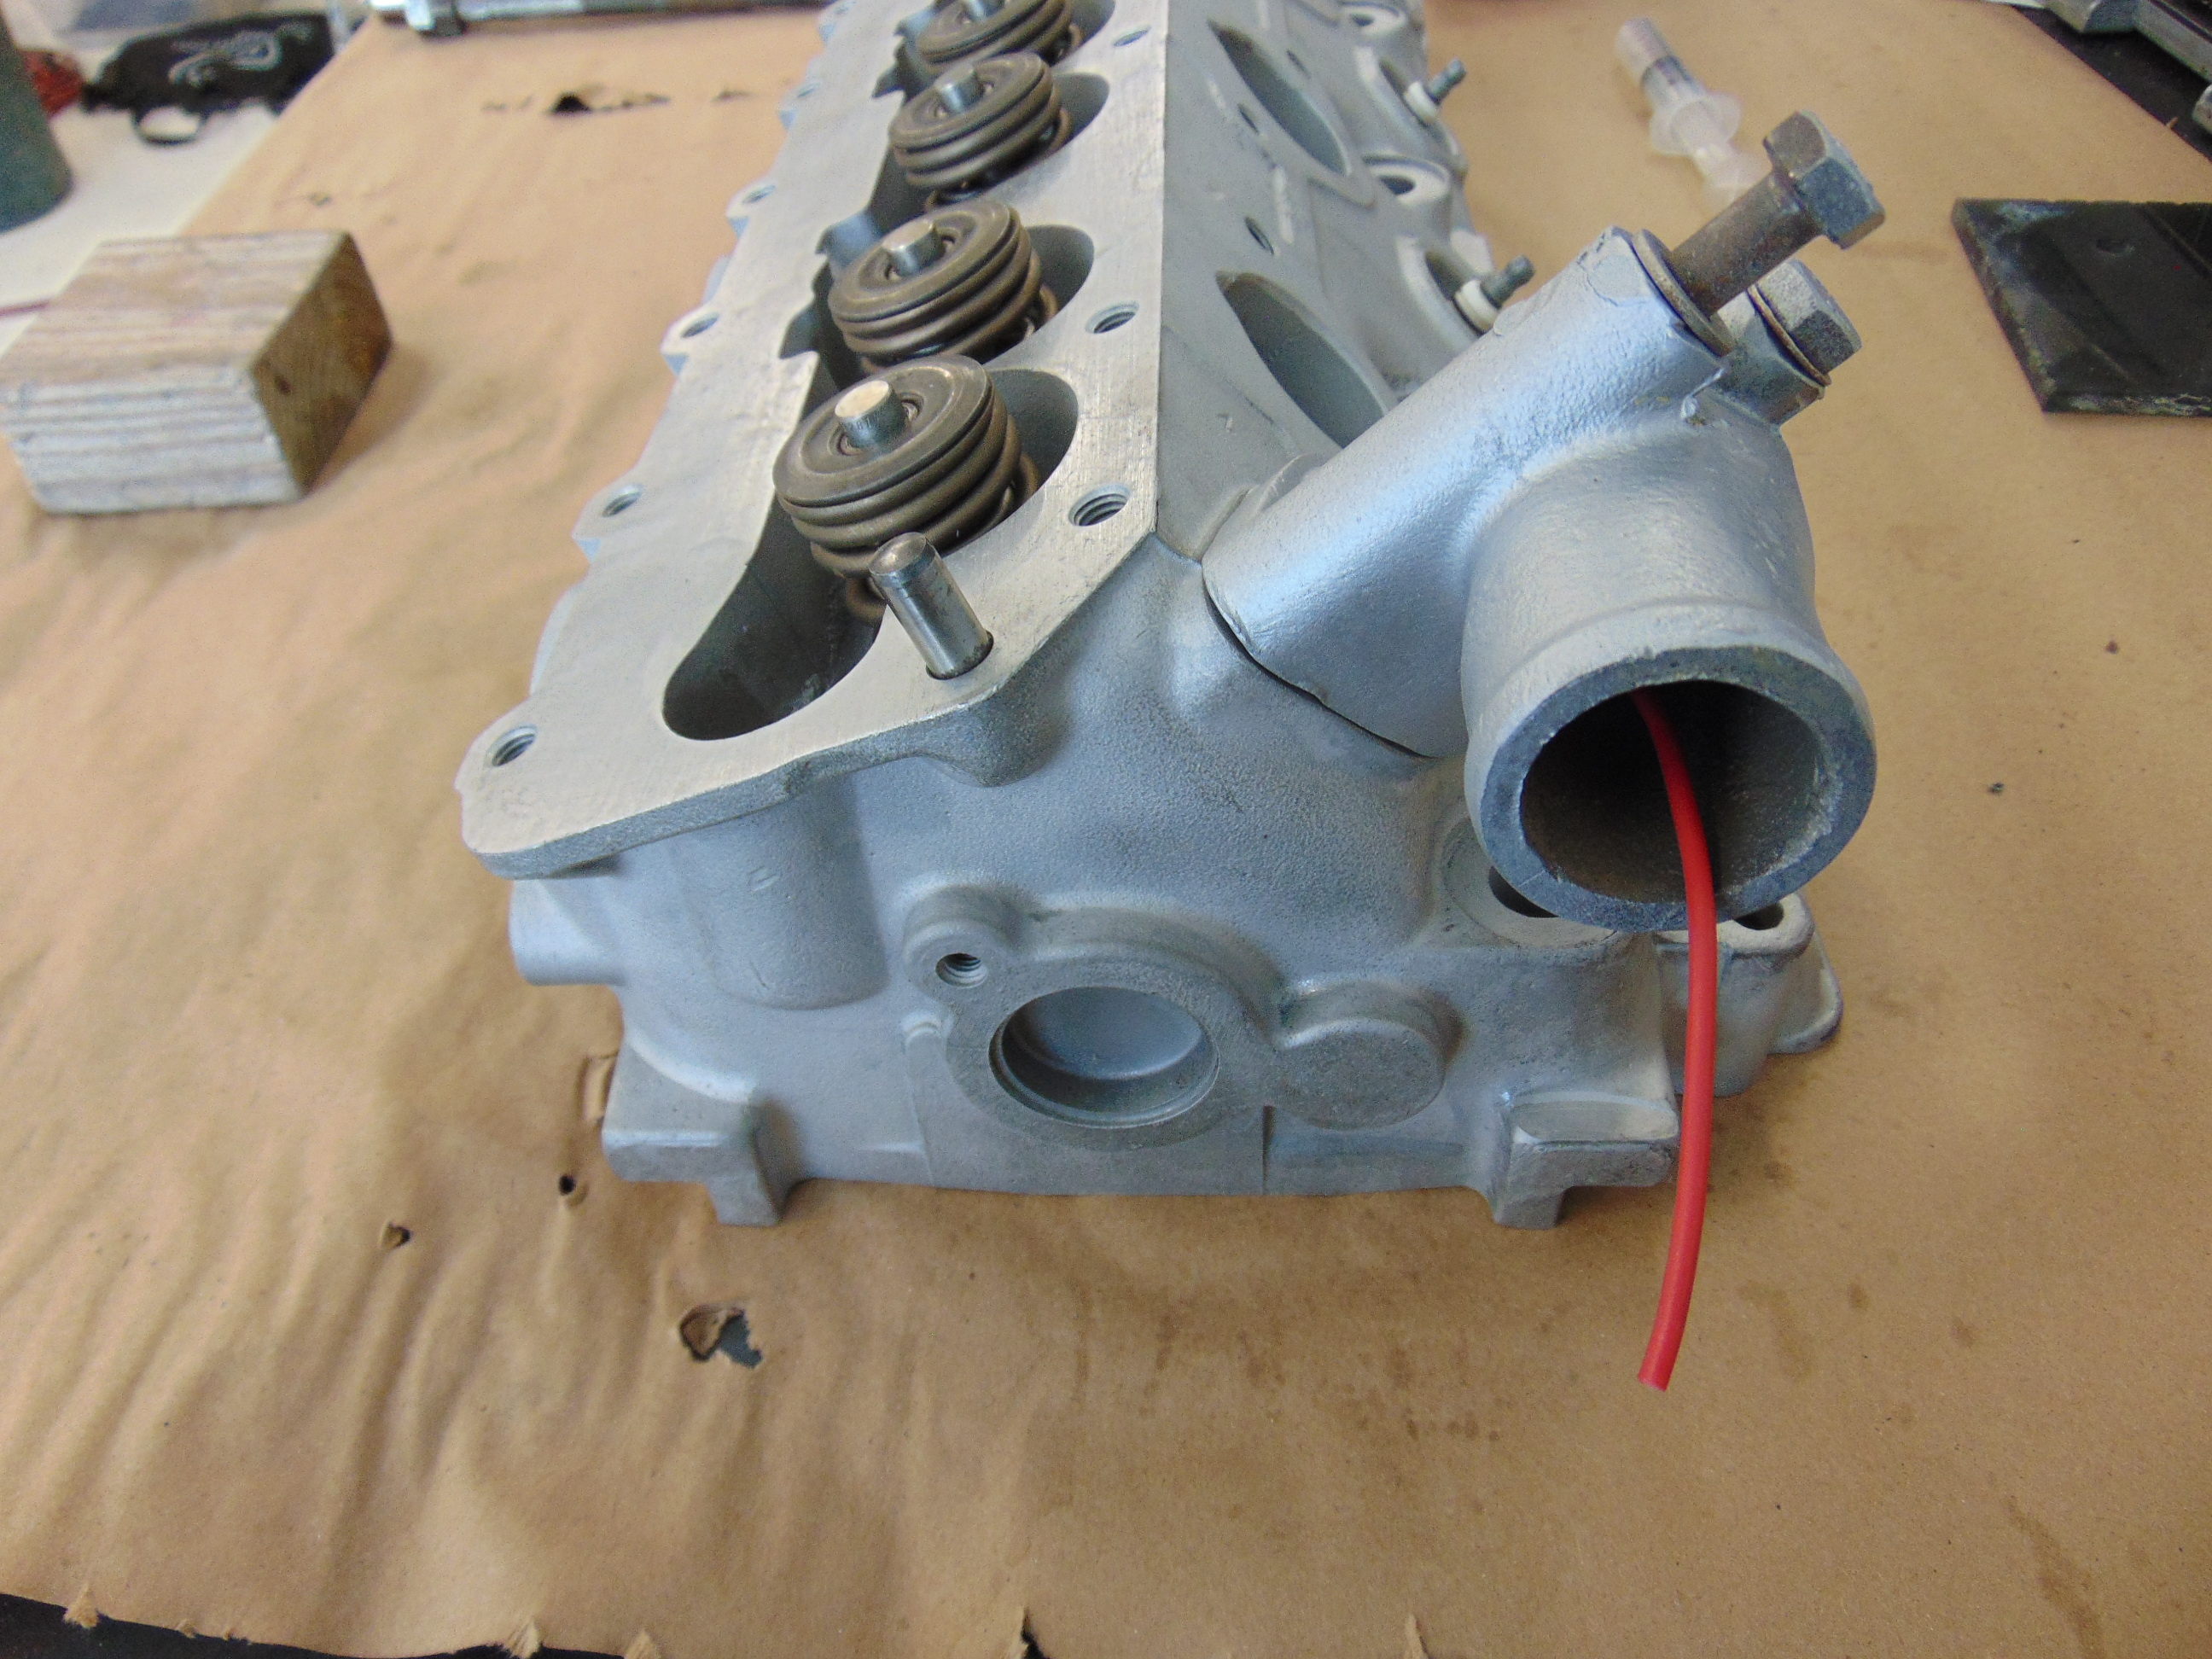 Porsche 944 Coolant System Explained New Hill Garage General Engine Right Angle Fitting On The Top Of Block Where Hot Is Expelled Hex Bolt At Rear Picture One You Release When Filling Your